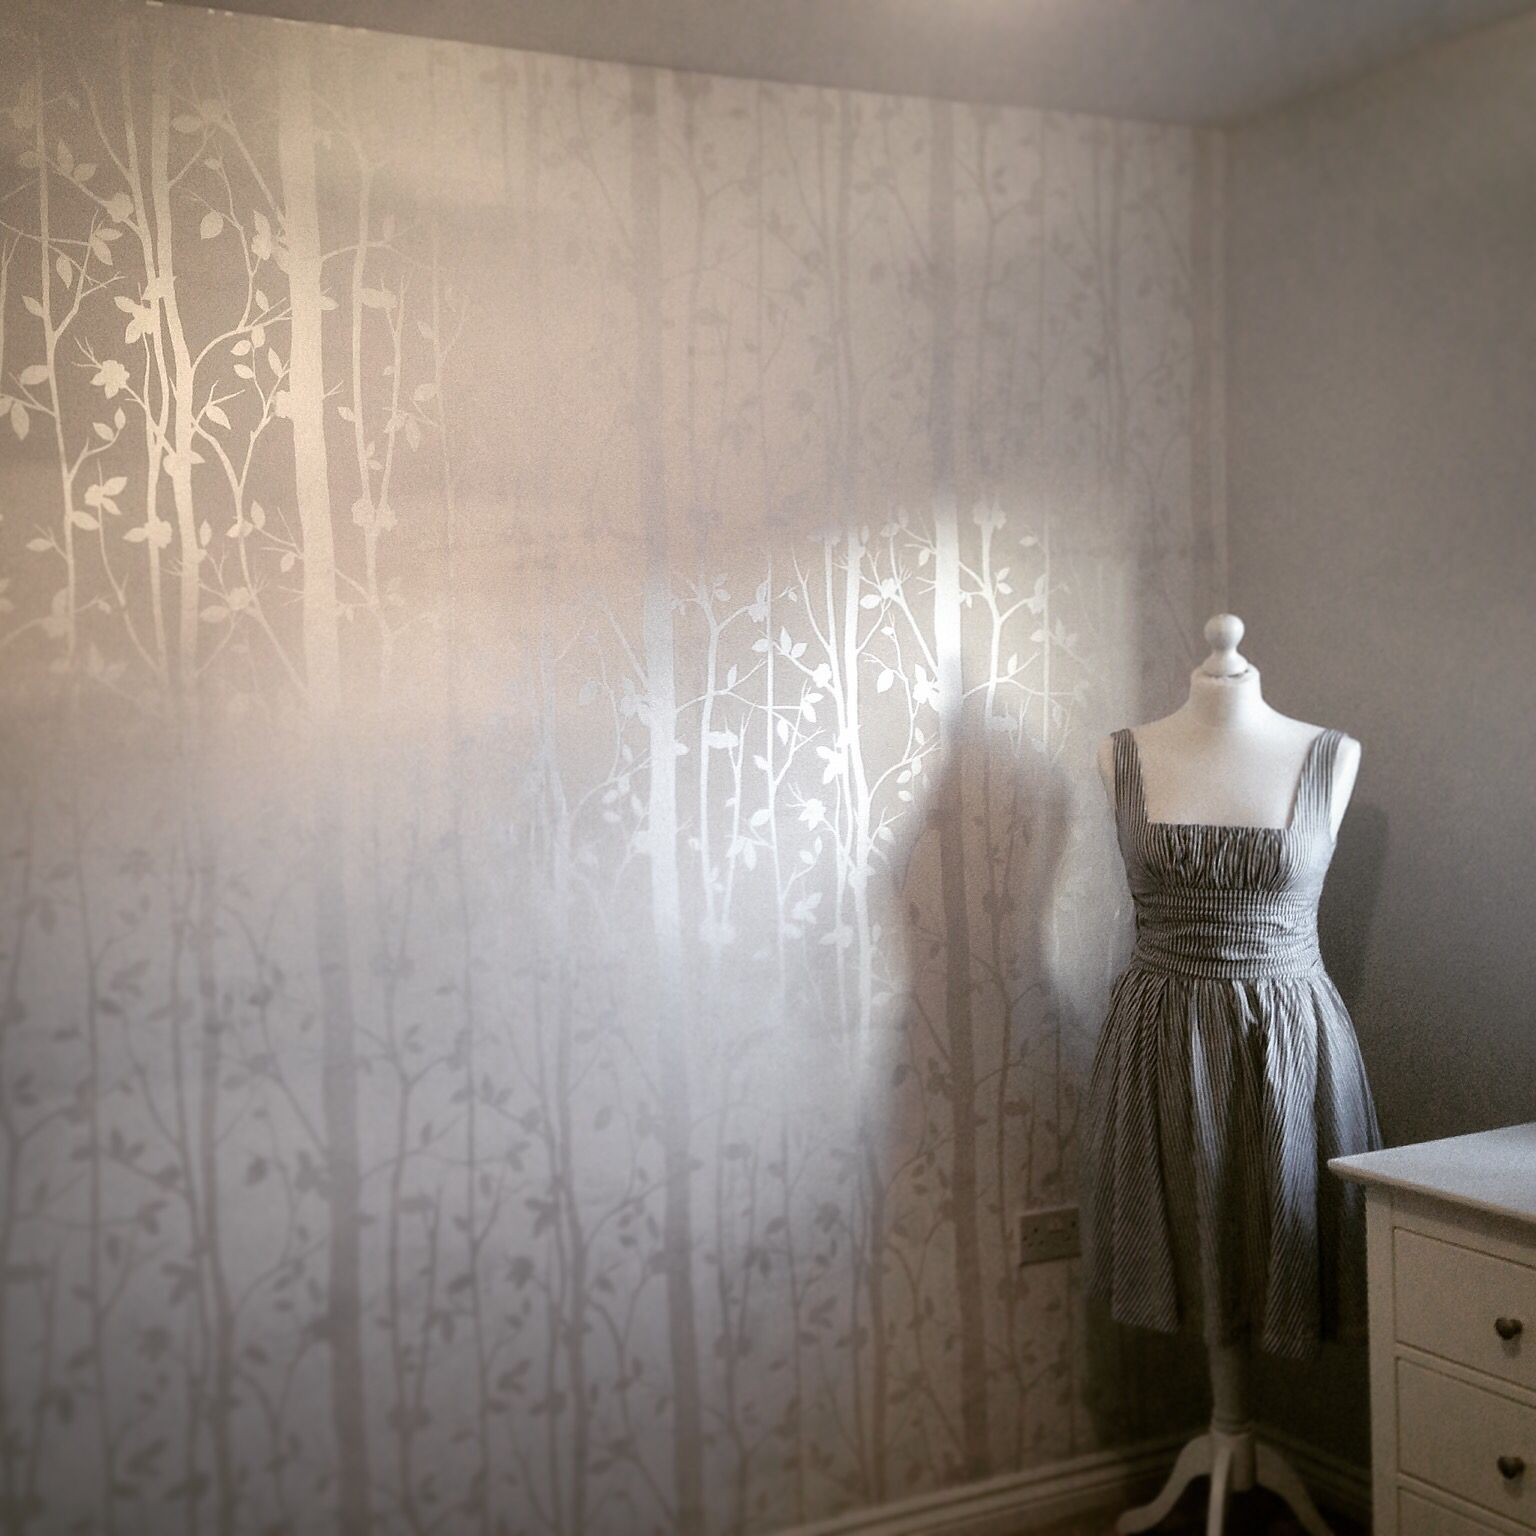 Bedroom Designs Laura Ashley cottonwood white wallpaper - laura ashley, first date dress